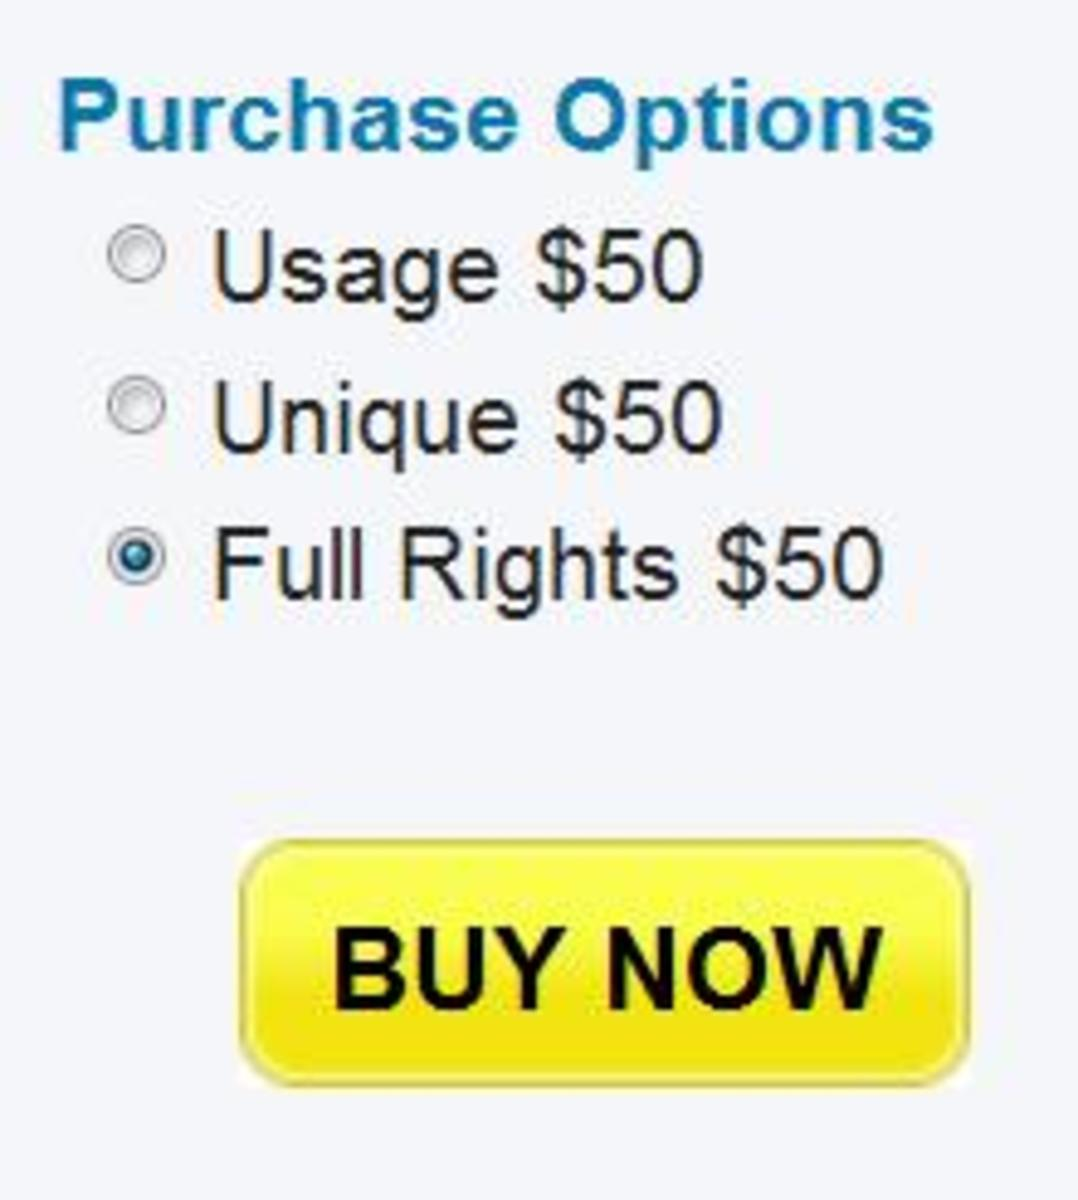 Purchase options for my 625 word article on Constant Content.